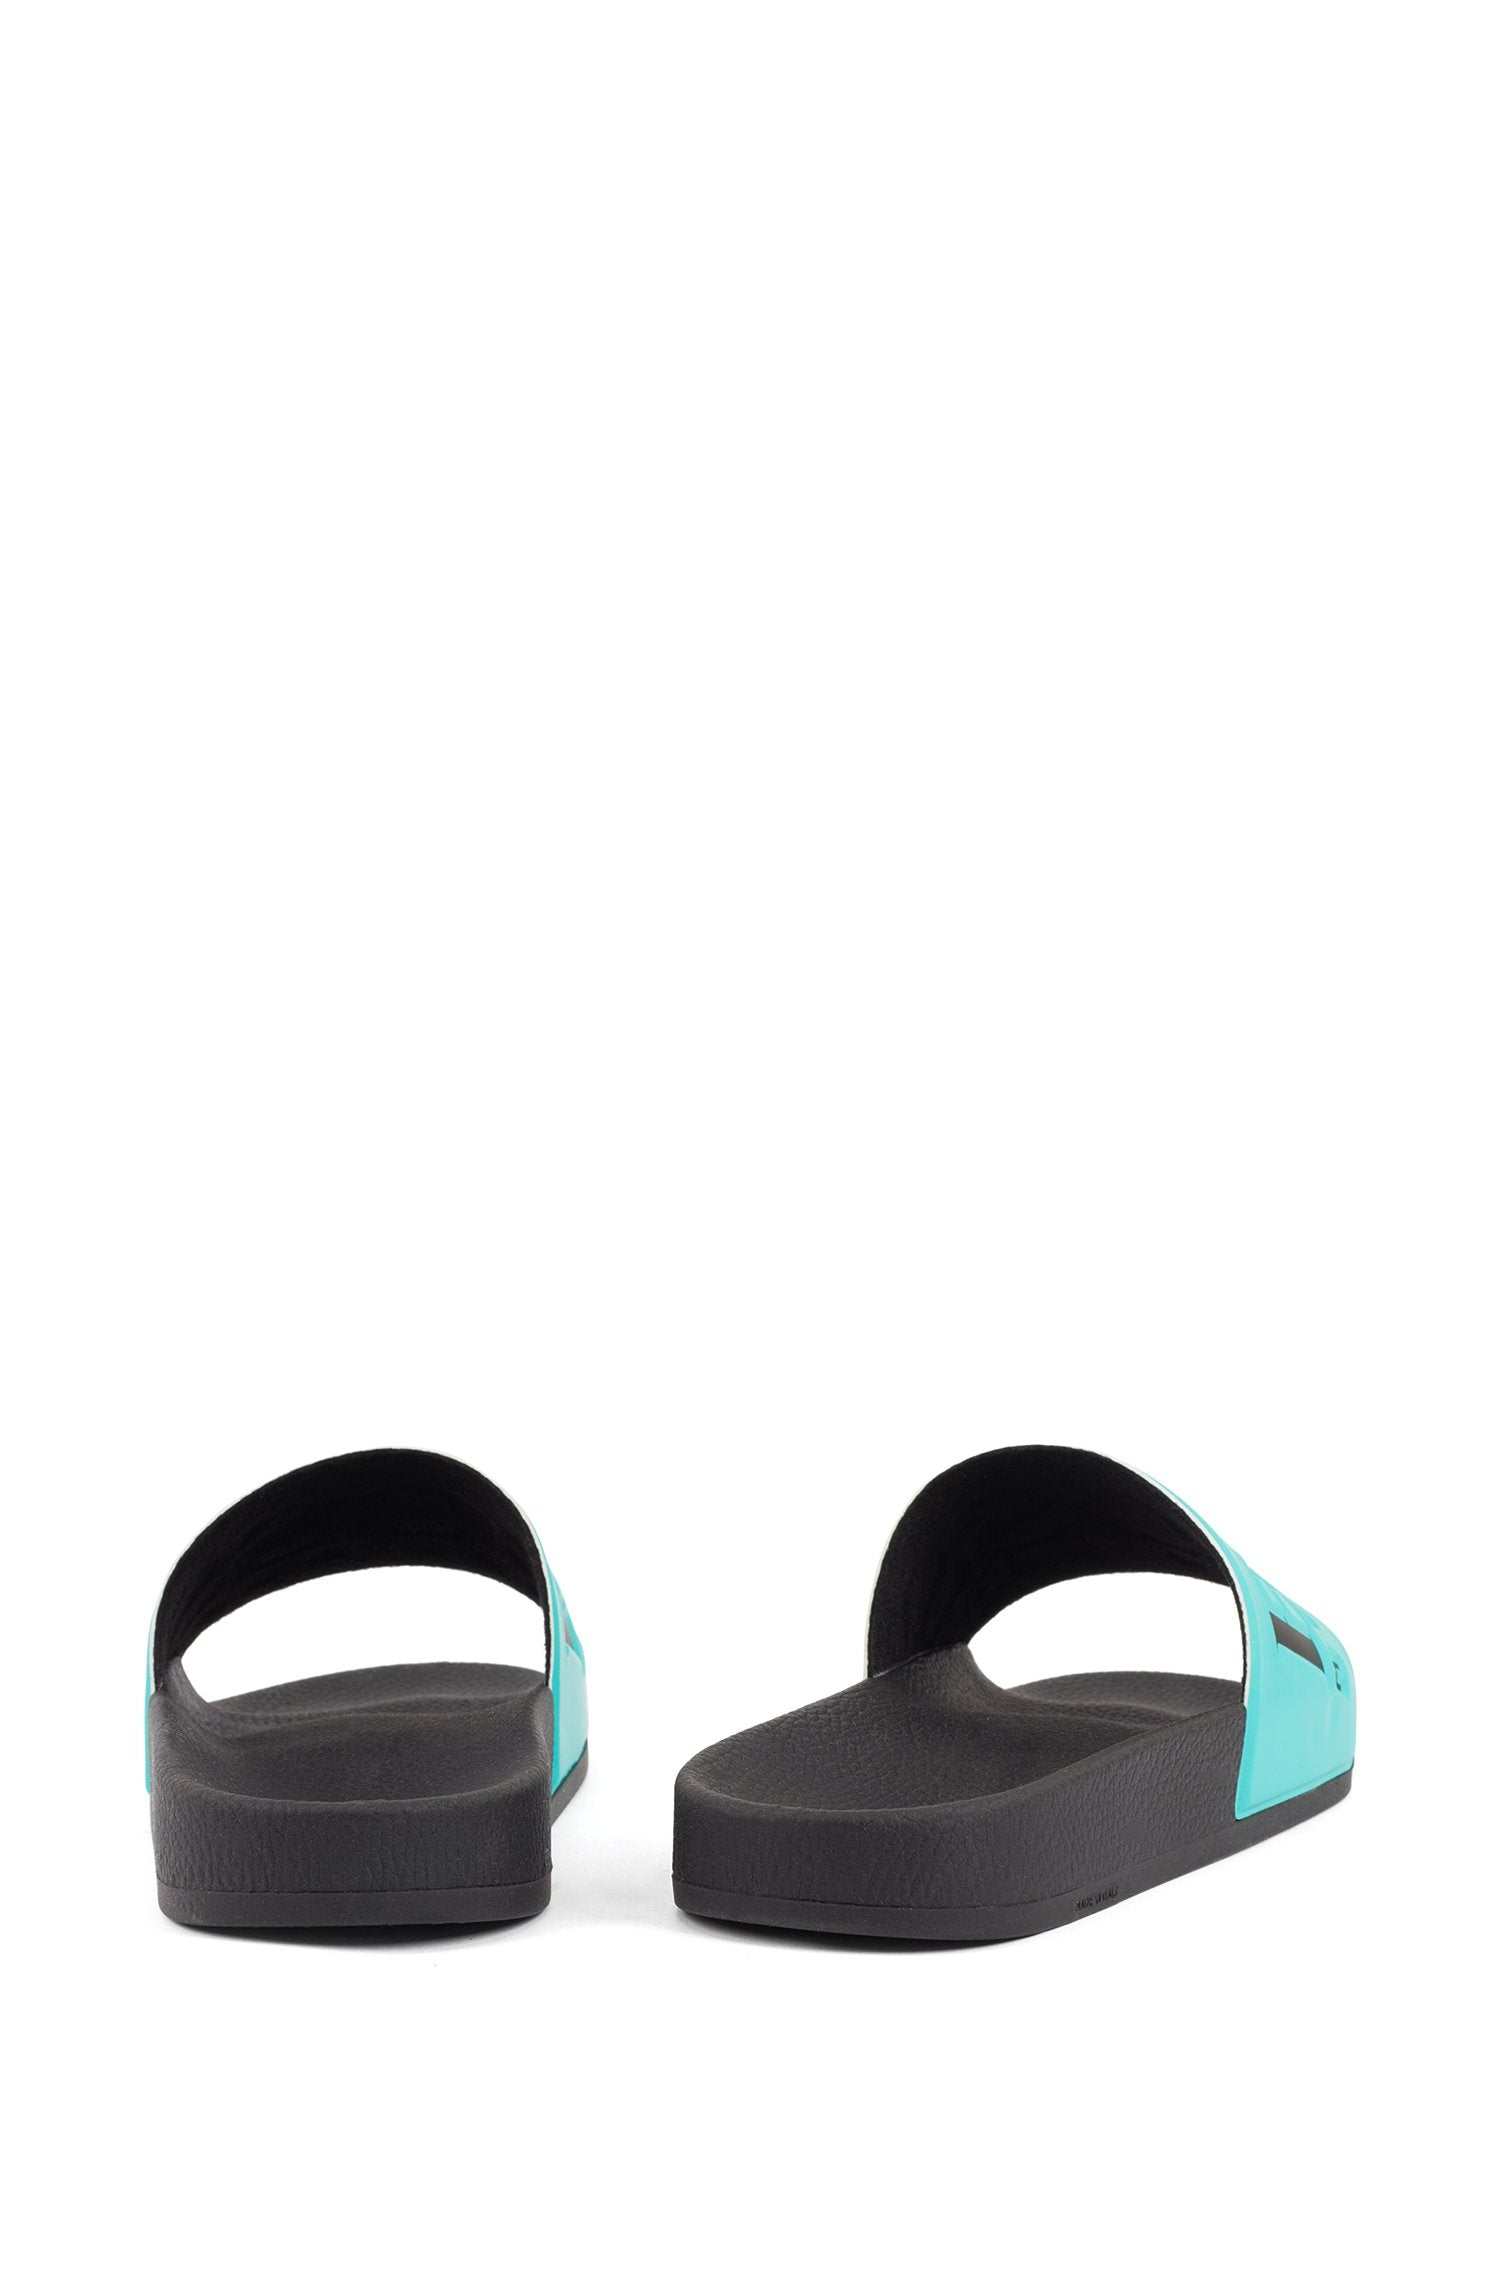 HUGO BOSS SOLAR SLID LOGO MEN'S SANDAL 50388496-440